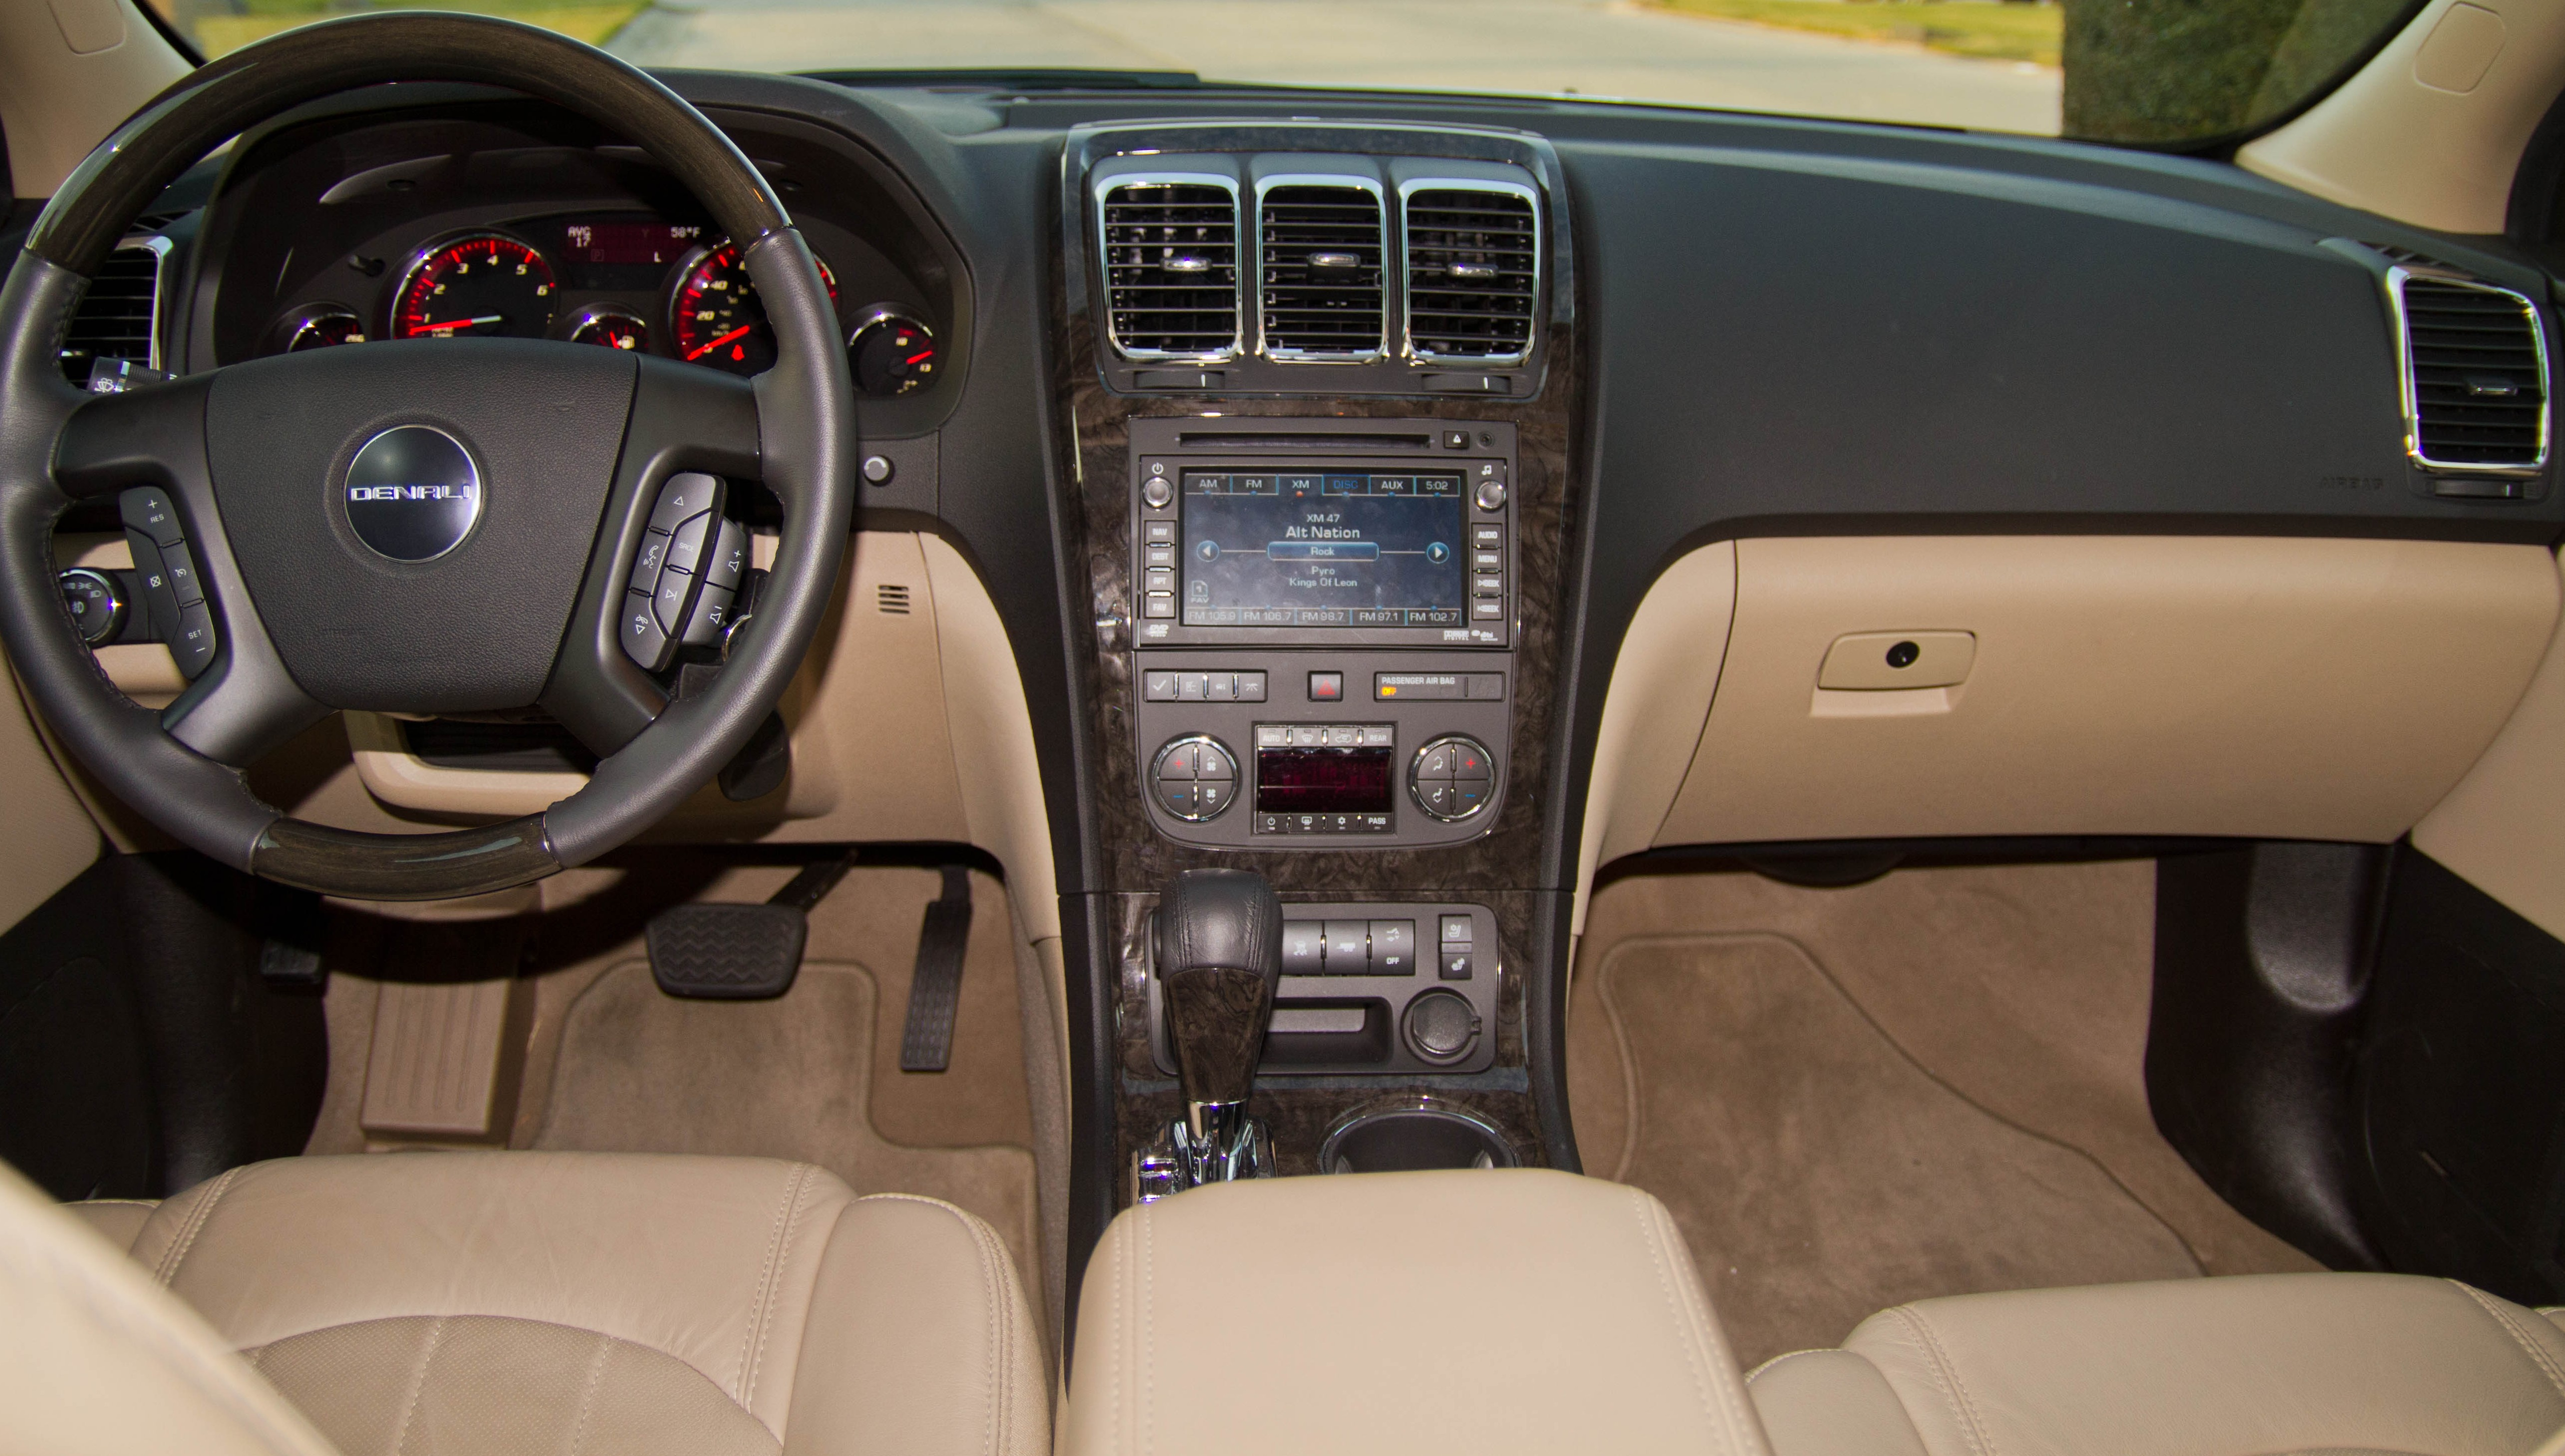 introductions picks lead interior new car into turbo enclaves buick instrumentation verano enclave site